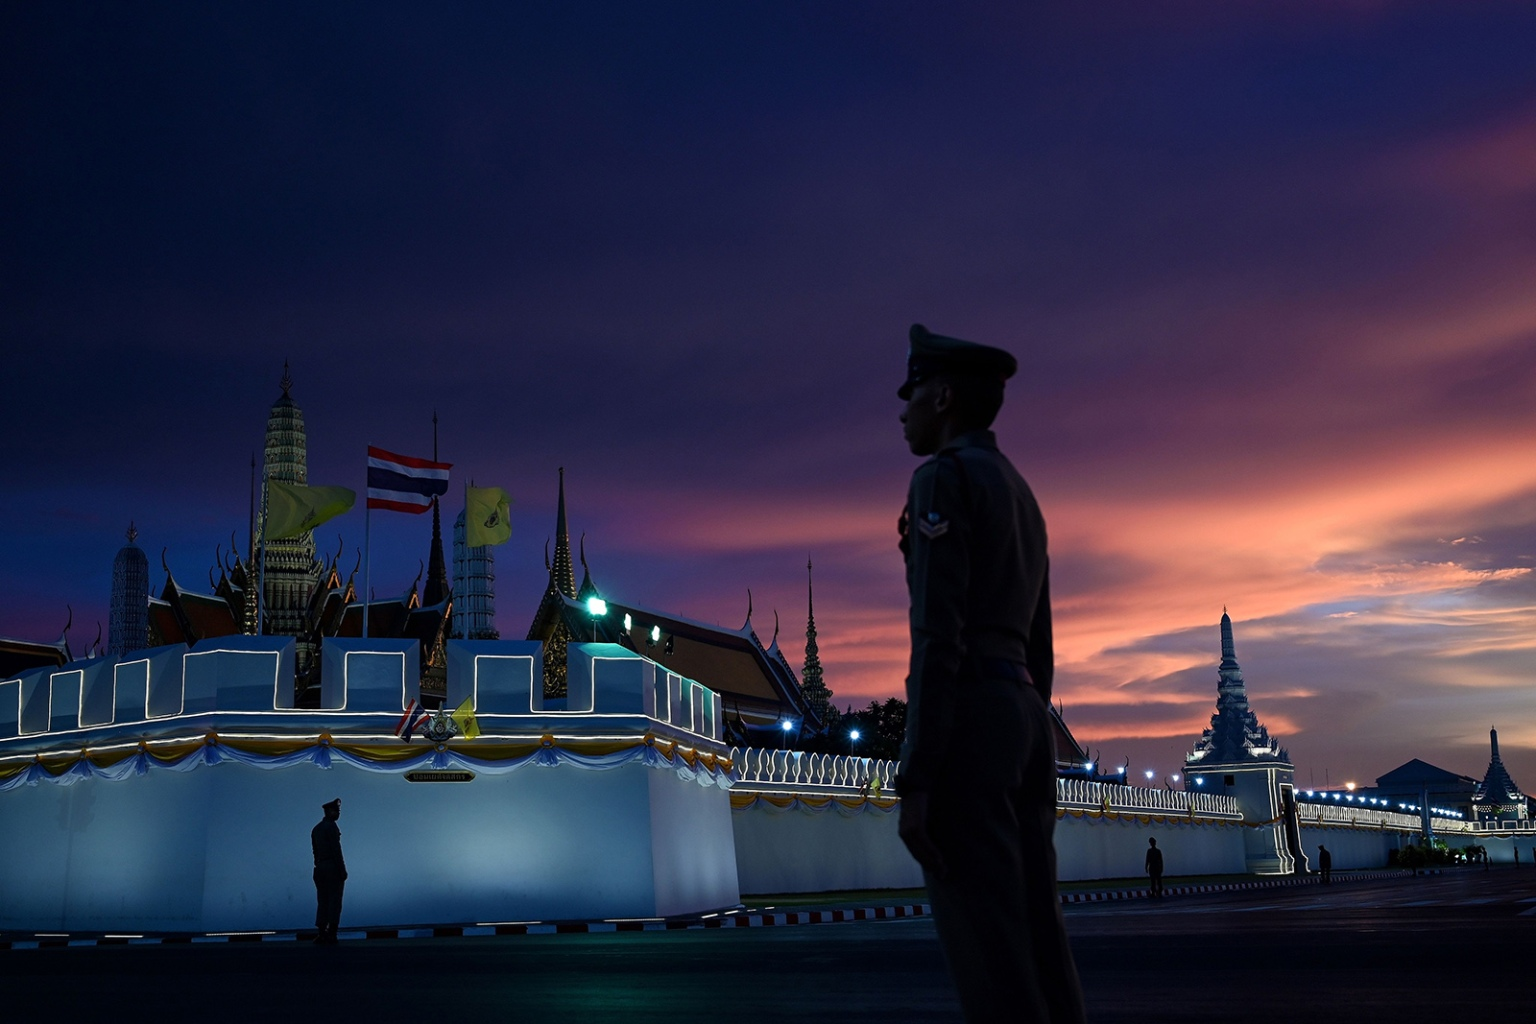 Royal Thai police stand guard near the Grand Palace in Bangkok on May 3 ahead of Thailand's King Maha Vajiralongkorn's coronation which will take place from May 4 to 6. MANAN VATSYAYANA/AFP/Getty Images